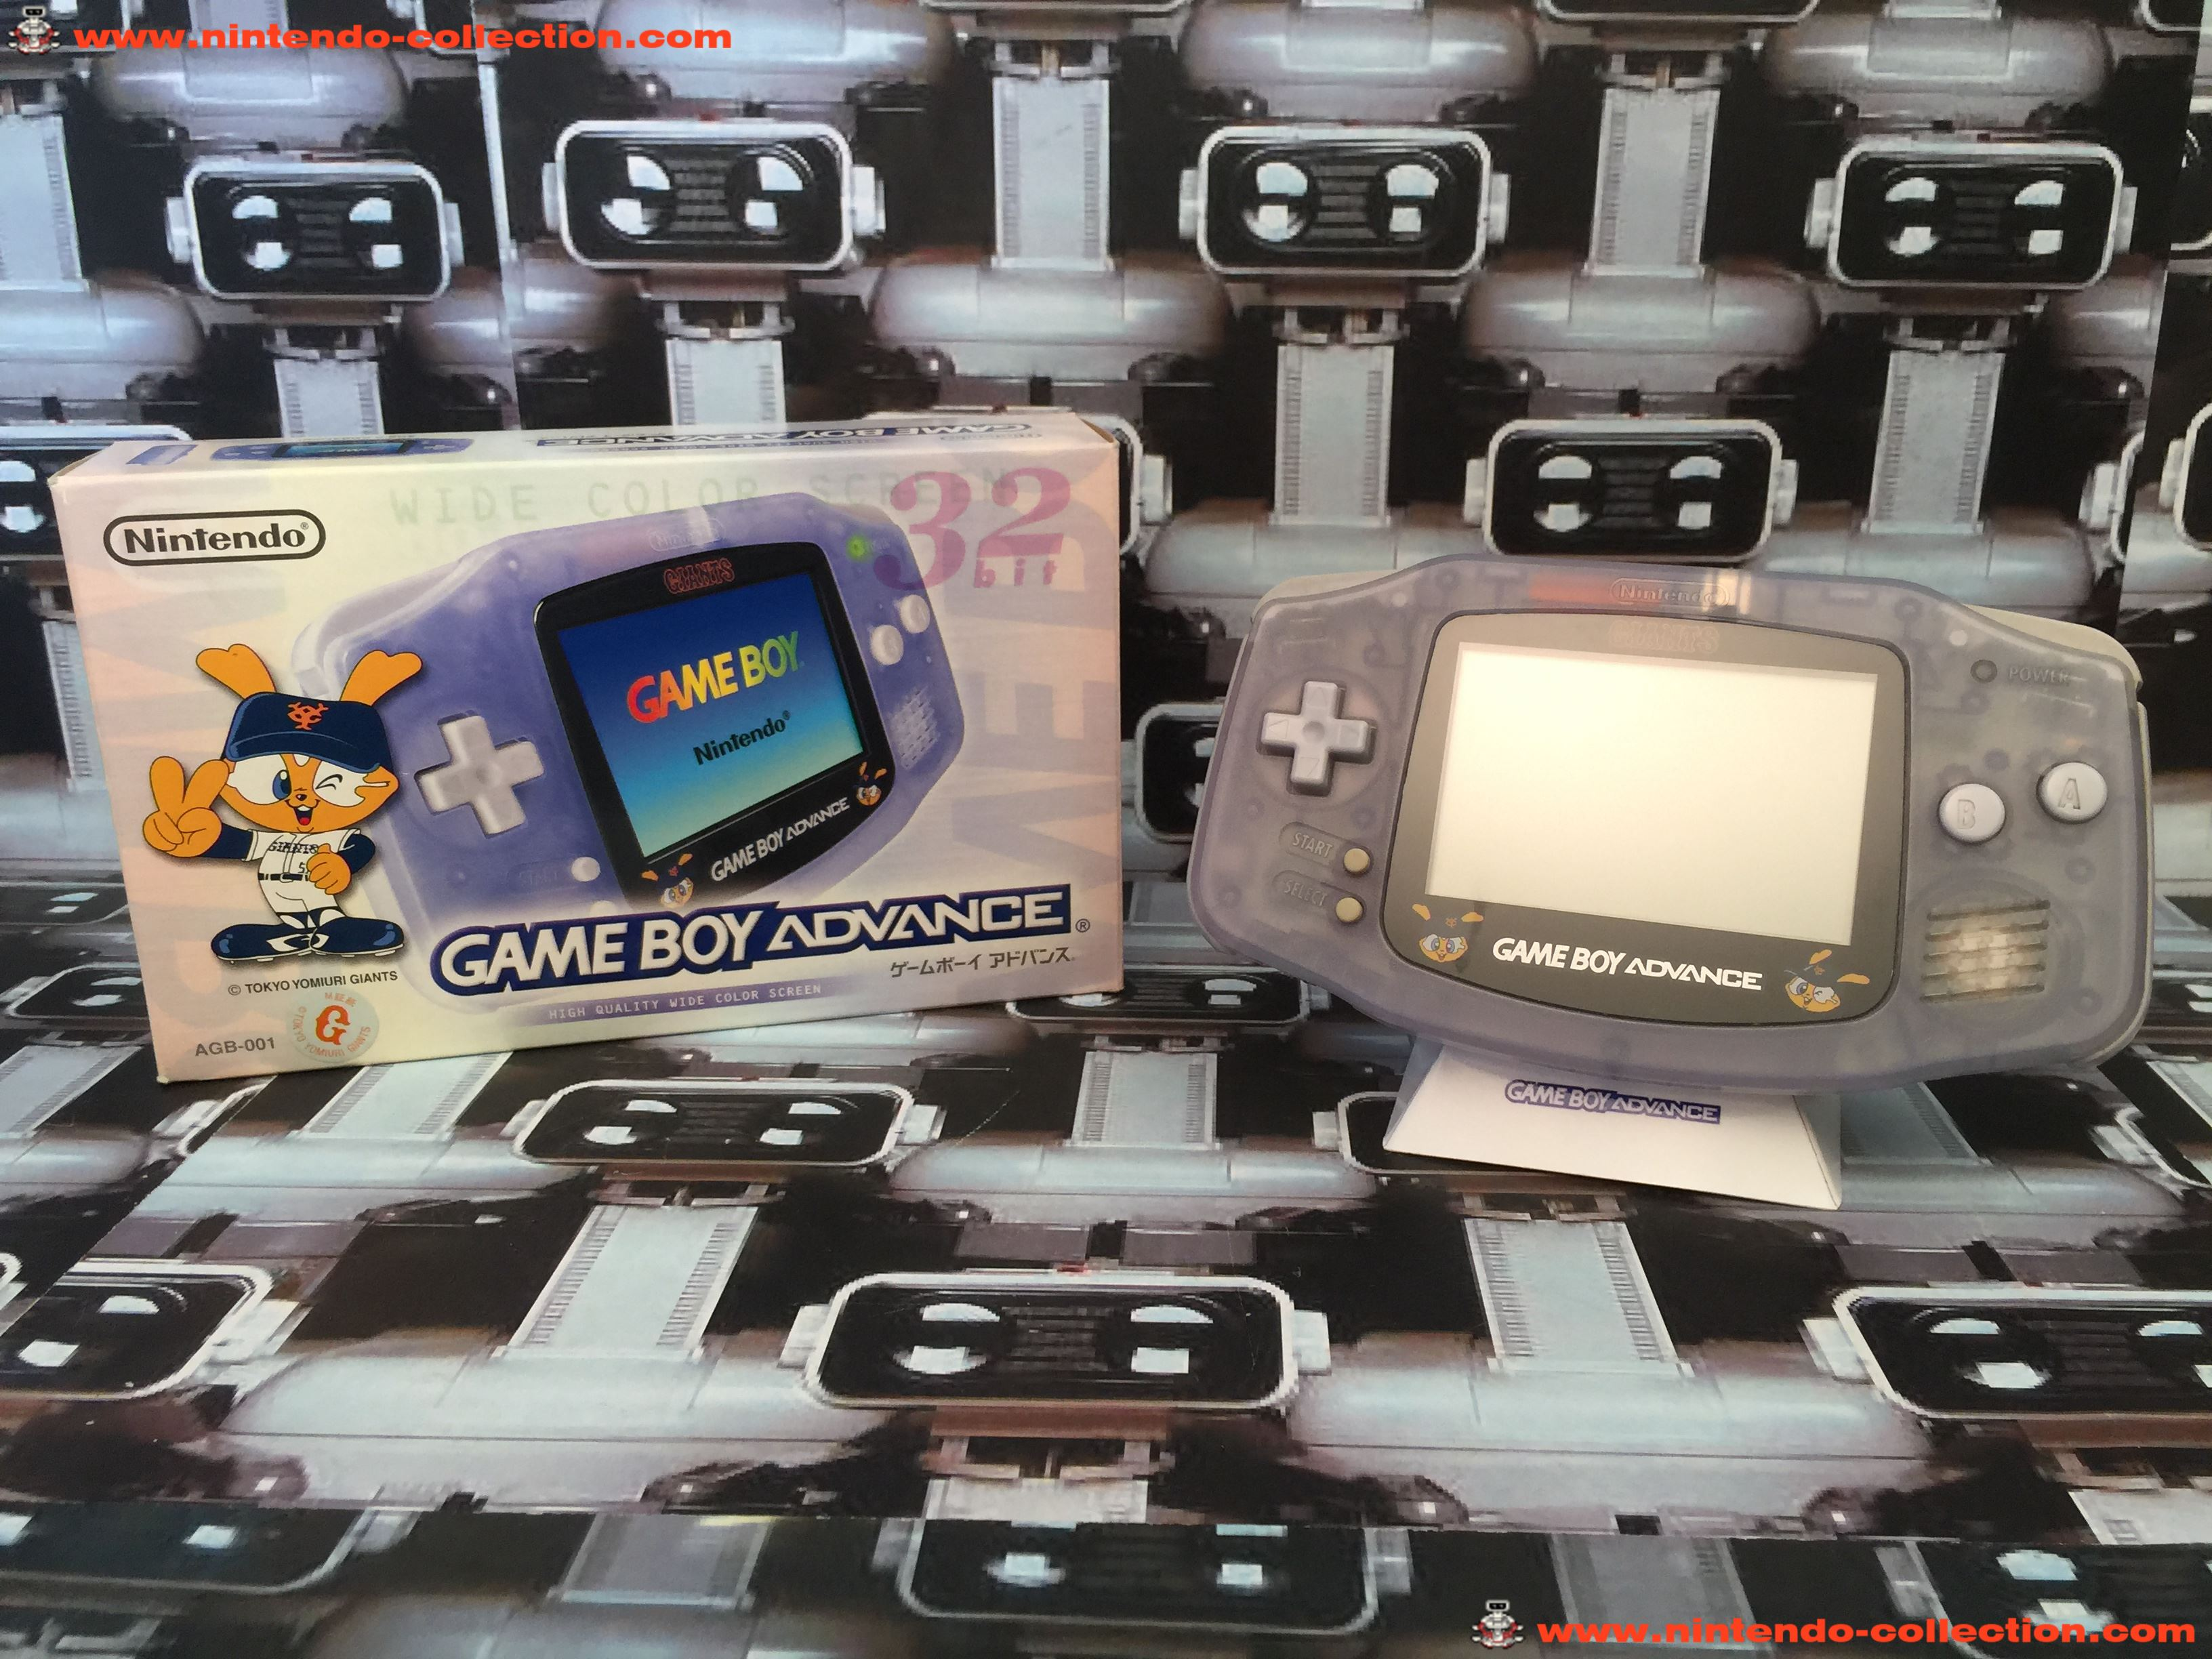 www.nintendo-collection.com - Gameboy Advance GBA Tokio Yomiuri Giants Limited Edition Glacier Clear